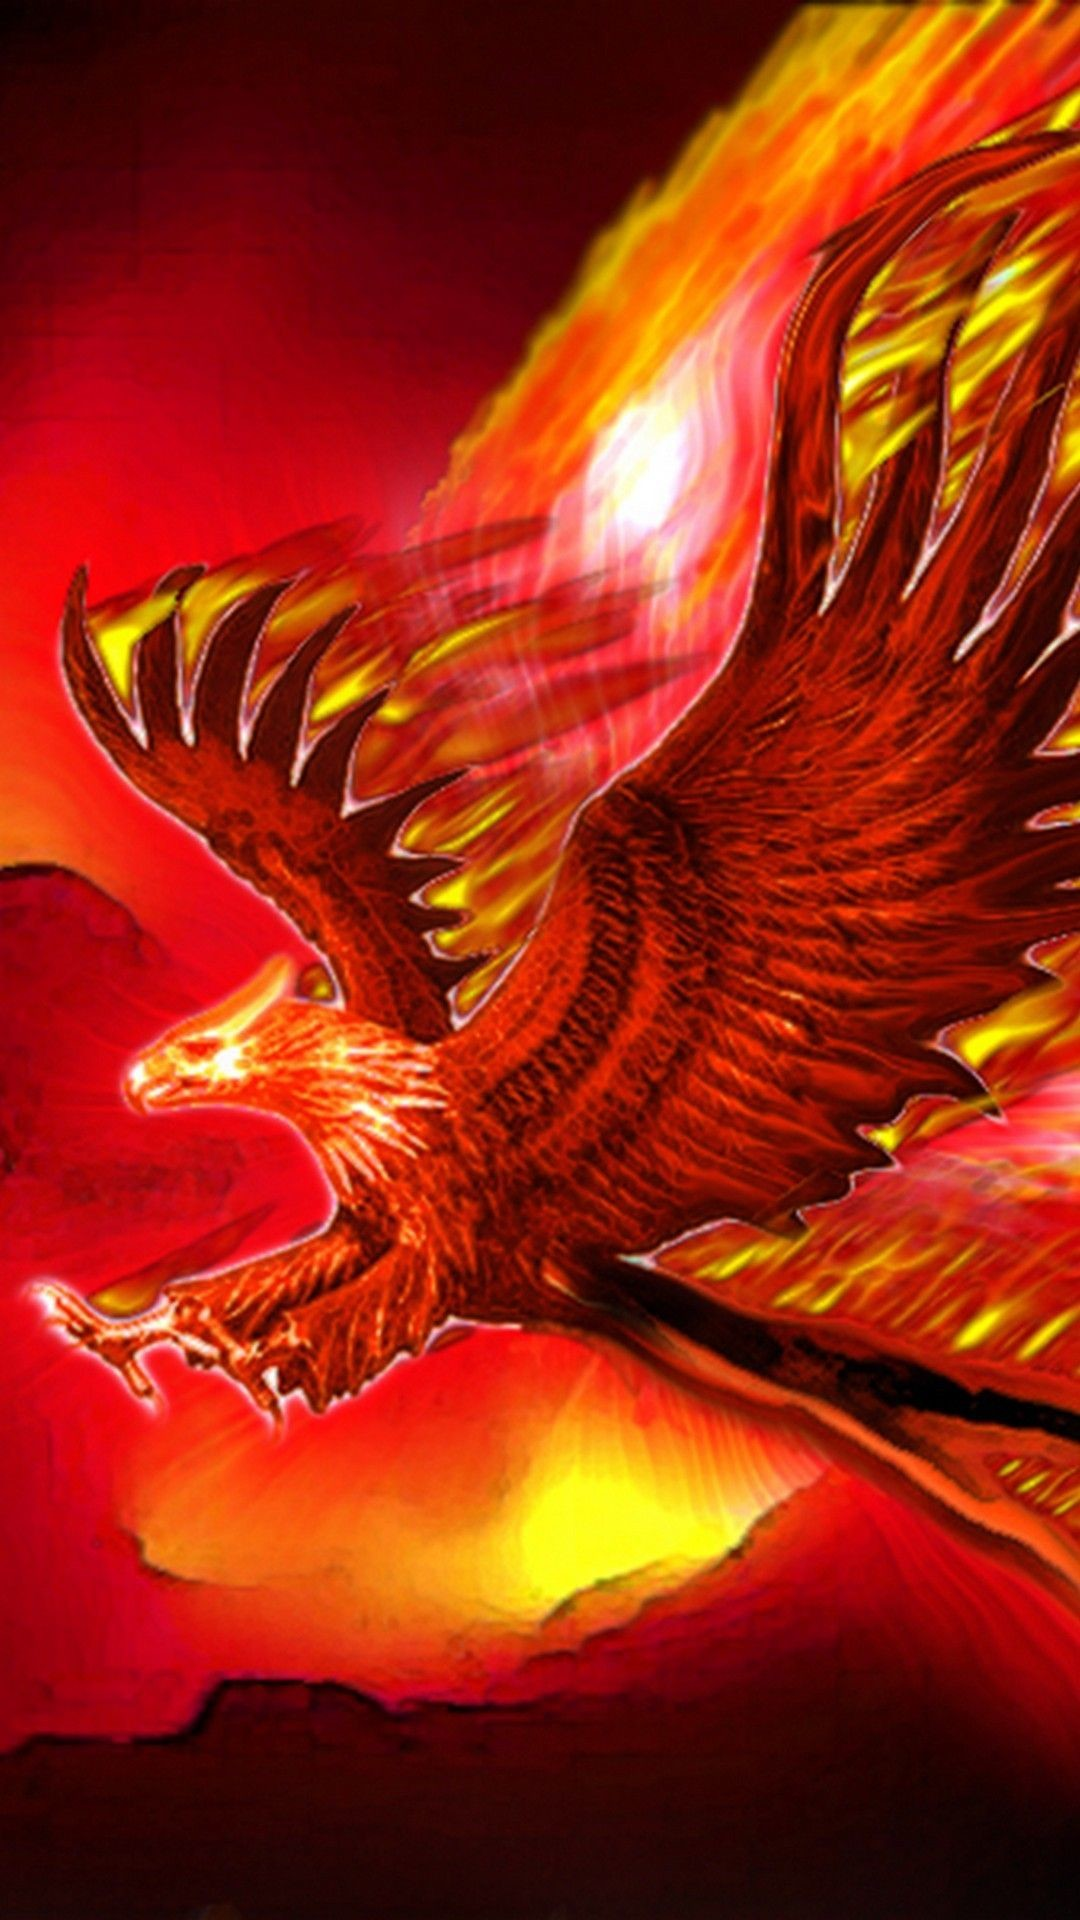 2200x1519 Phoenix Bird Wallpapers 39764 HD Desktop Backgrounds And